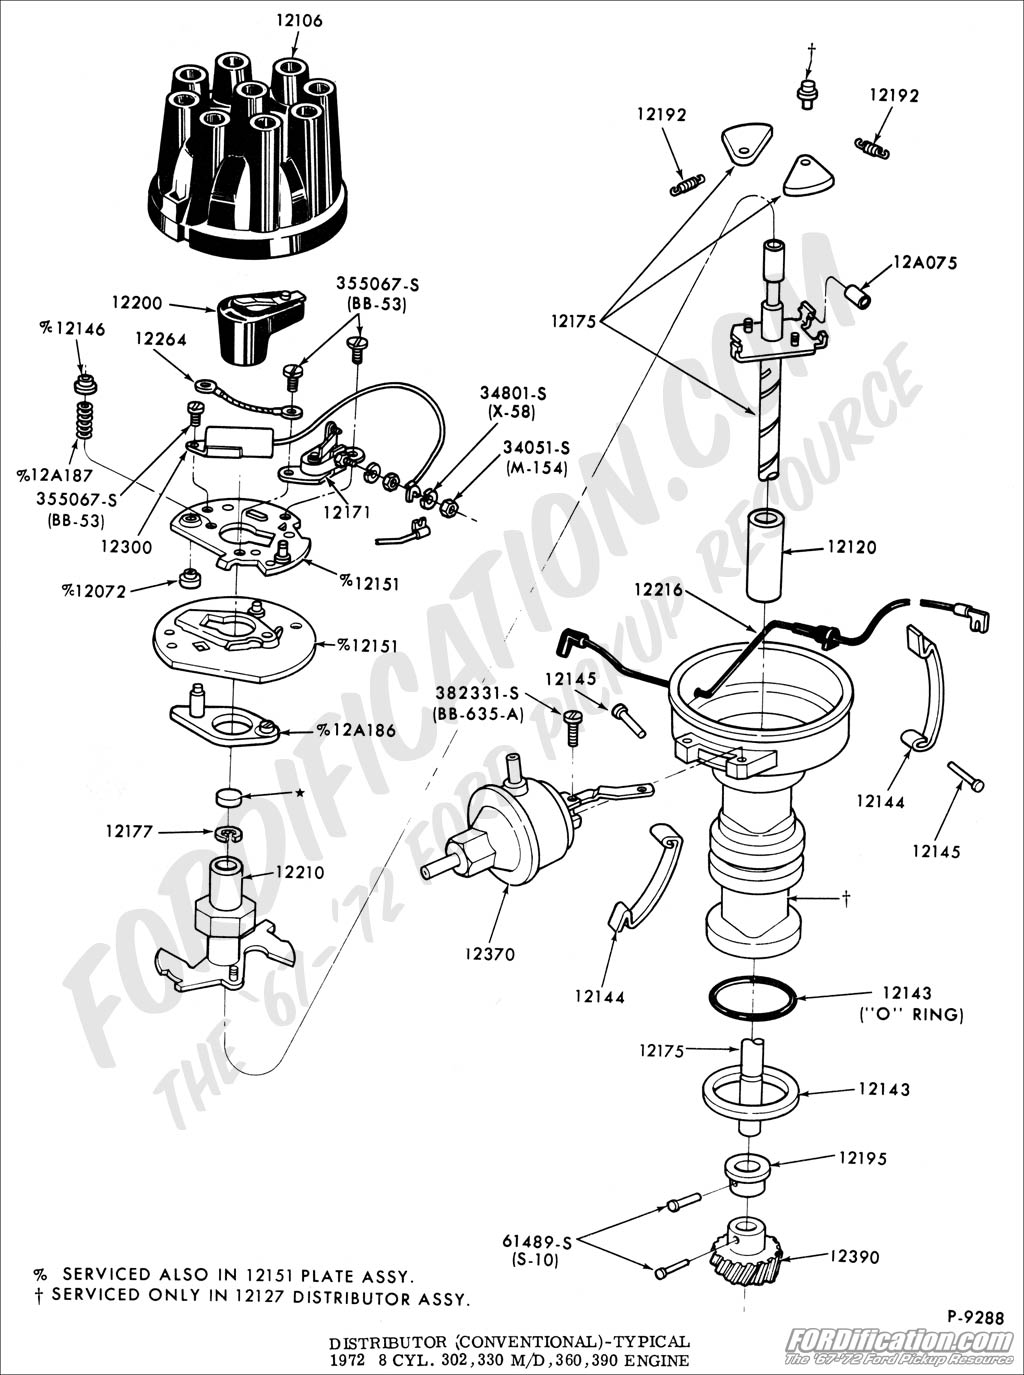 Diagram ford 360 distributors wiring diagram ford truck technical drawings and schematics section i ford 300 6 cylinder diagram ford 360 distributors 1969